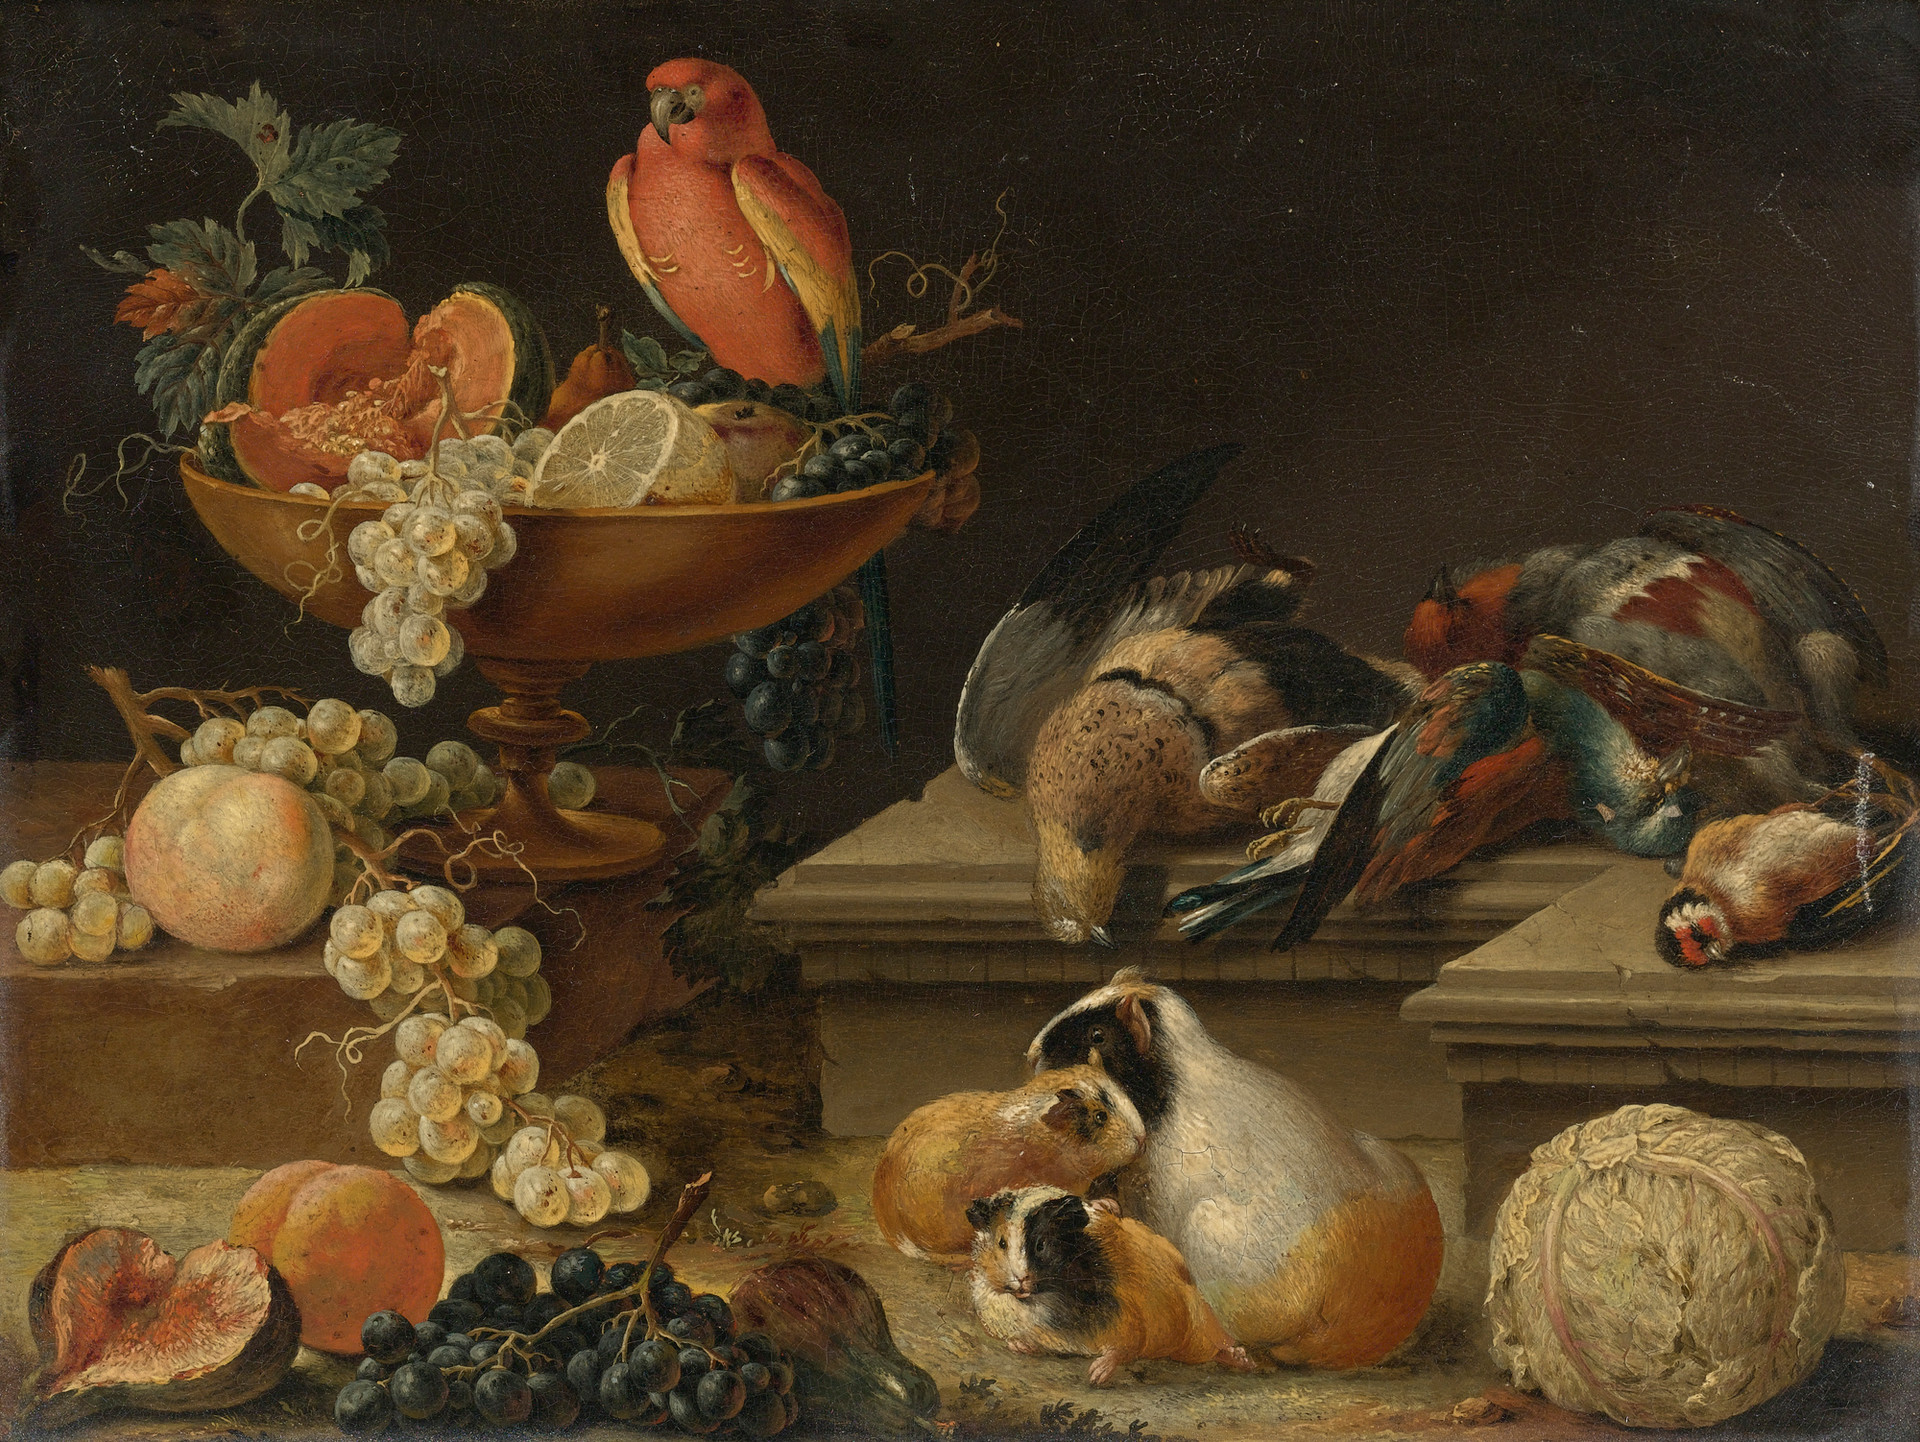 Still Life with a Parrot, Game Fowl, Guinea Pigs, and Fruit